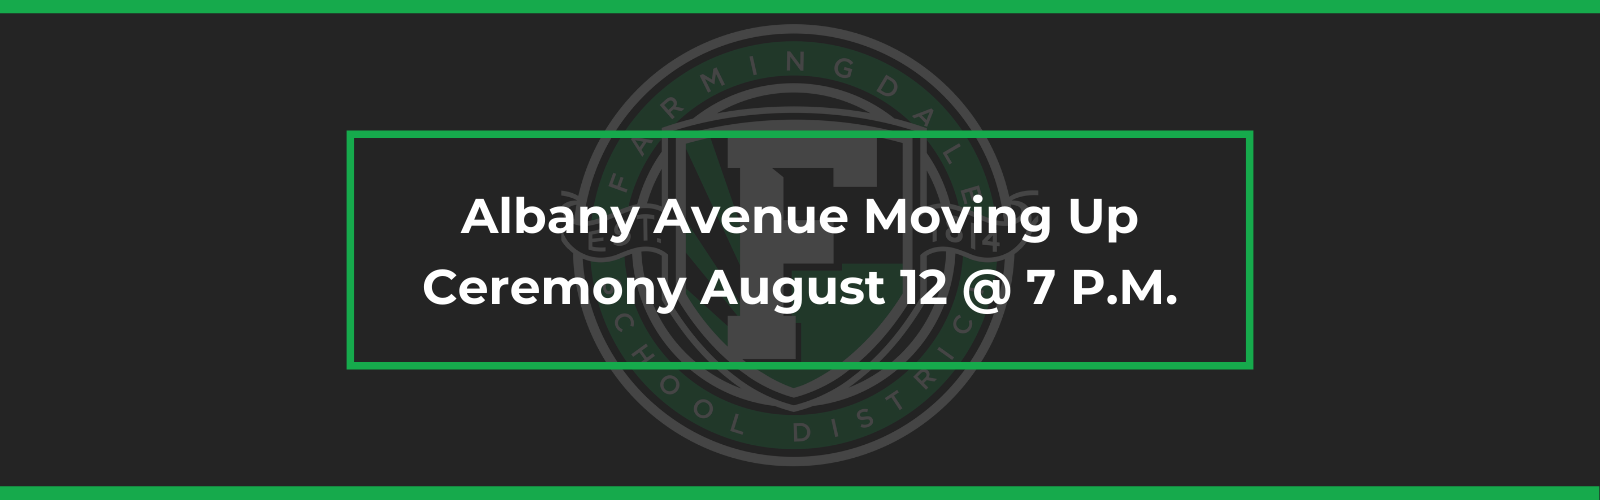 Albany Avenue Moving Up Ceremony